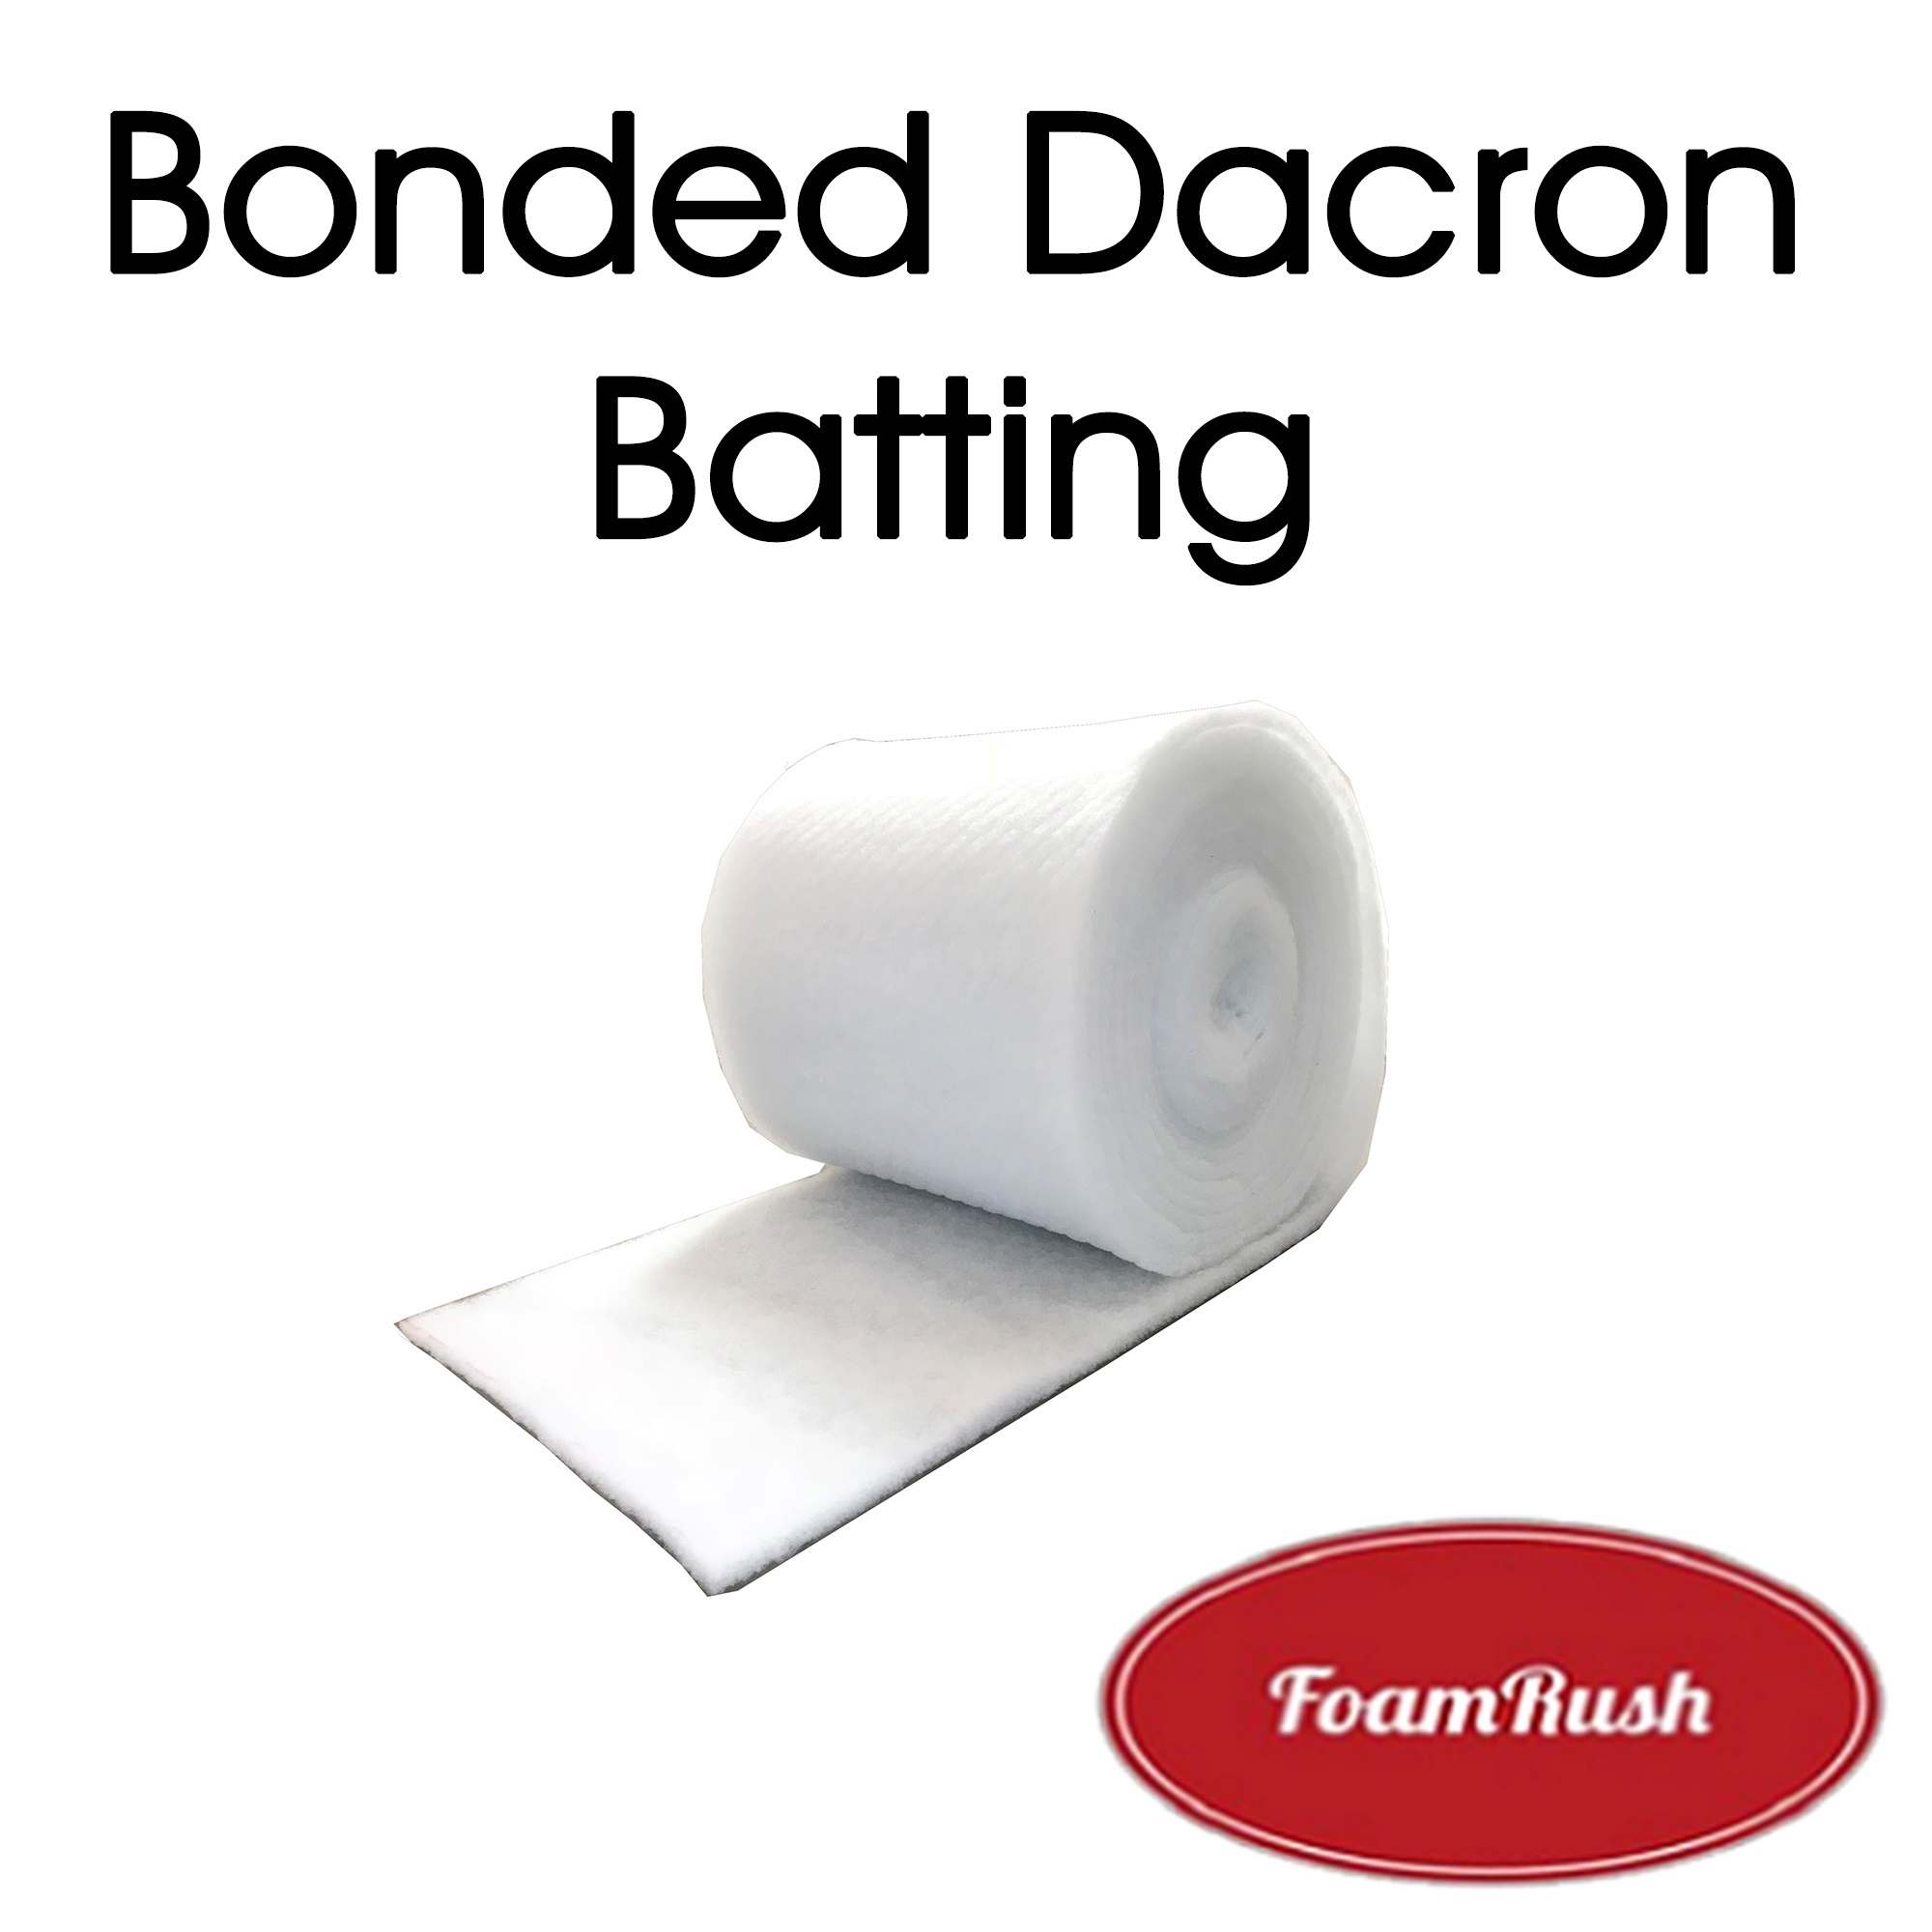 "Foamrush 1/2 Ounce 24"" x 24"" Low-Loft Bonded Polyester White Quilt Dacron / Batting Ready Made Pre Cut Square Sizes"